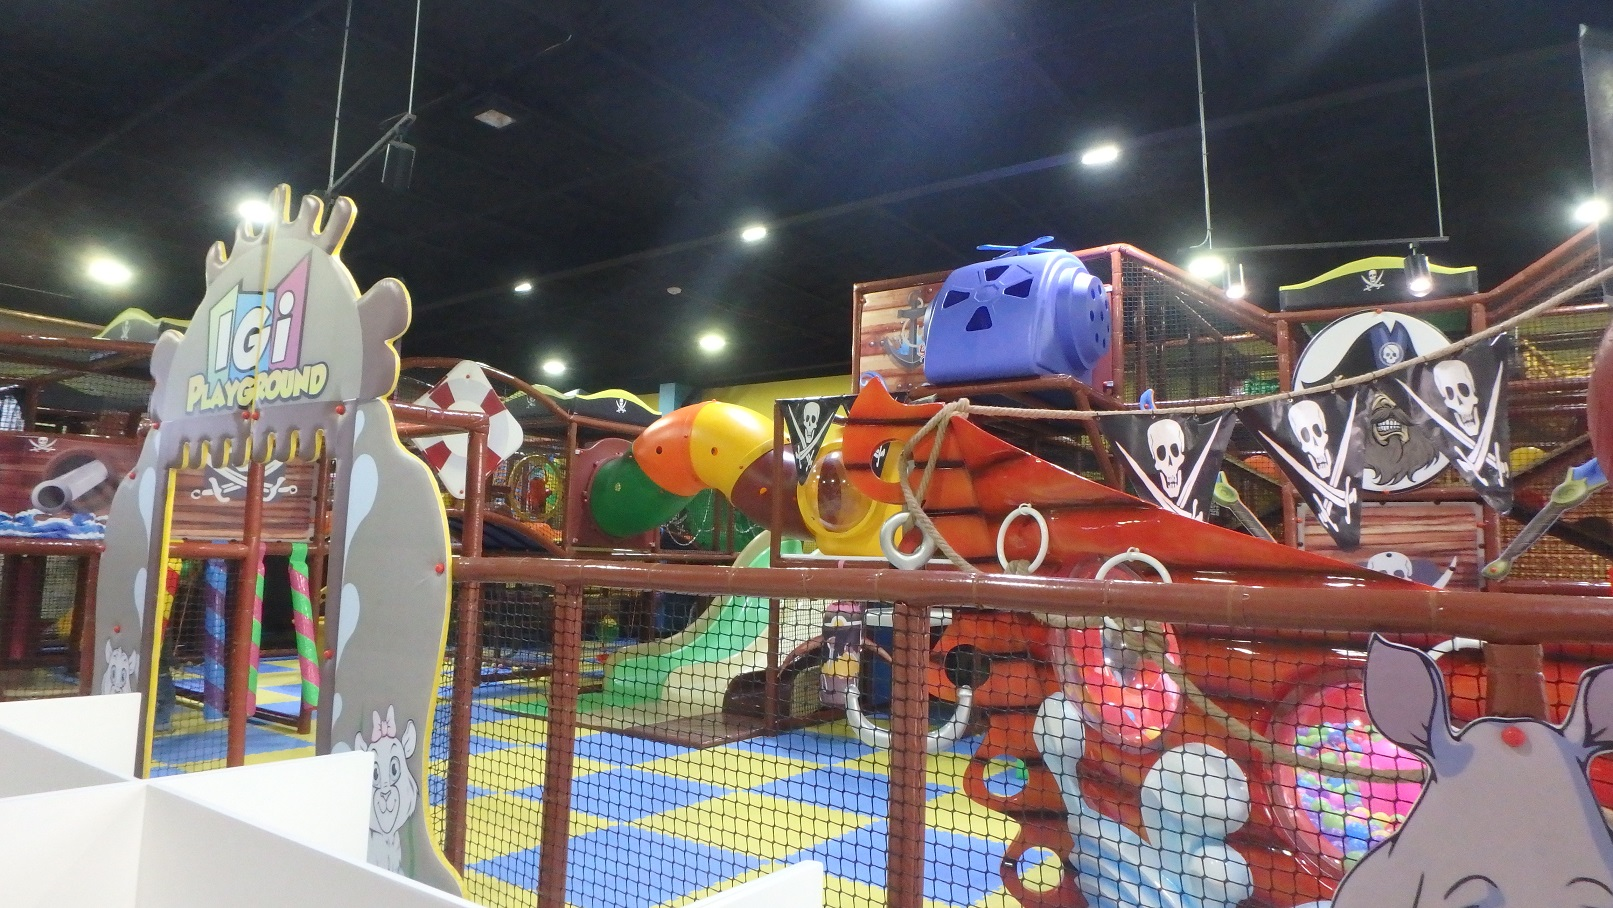 Star wars kids special at igi playground in the woodlands for Nyc kids activities today